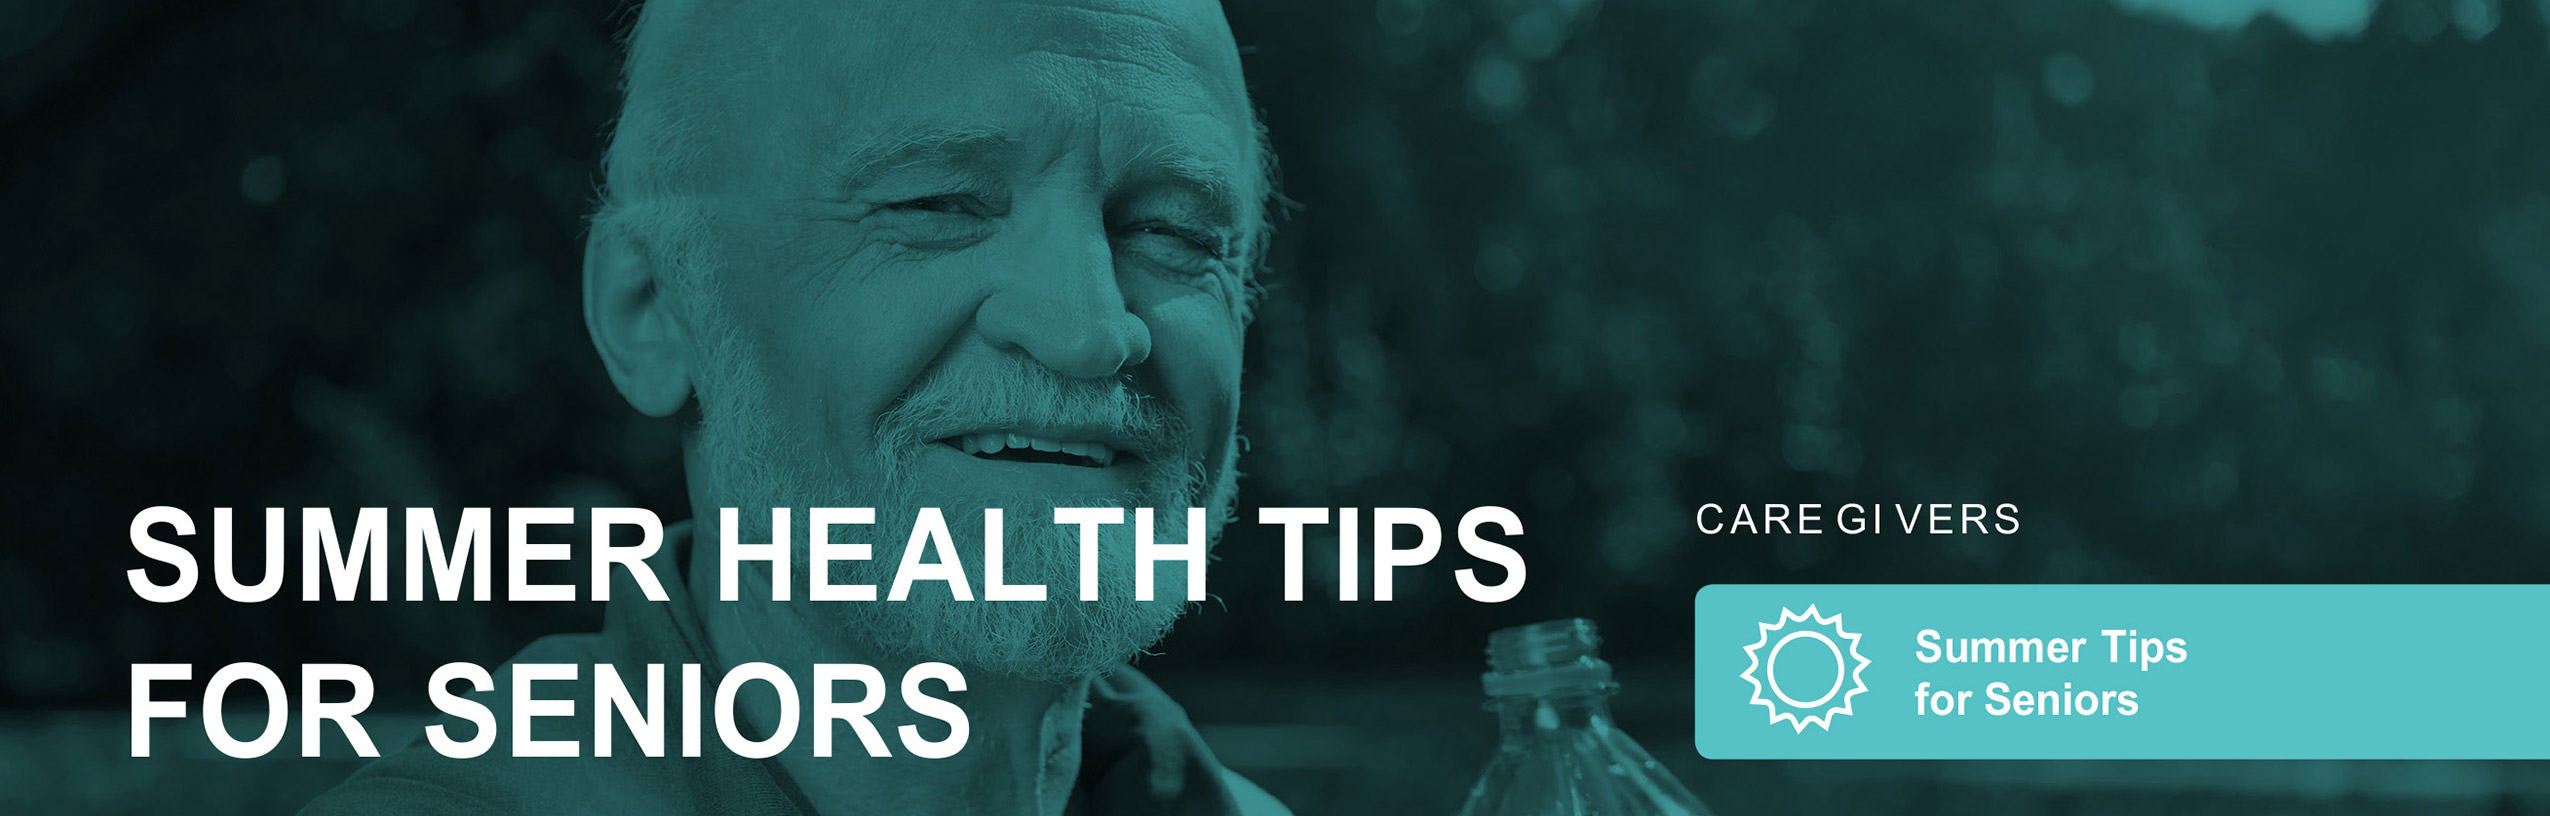 Helpful Home Care info about summer health tips for seniors